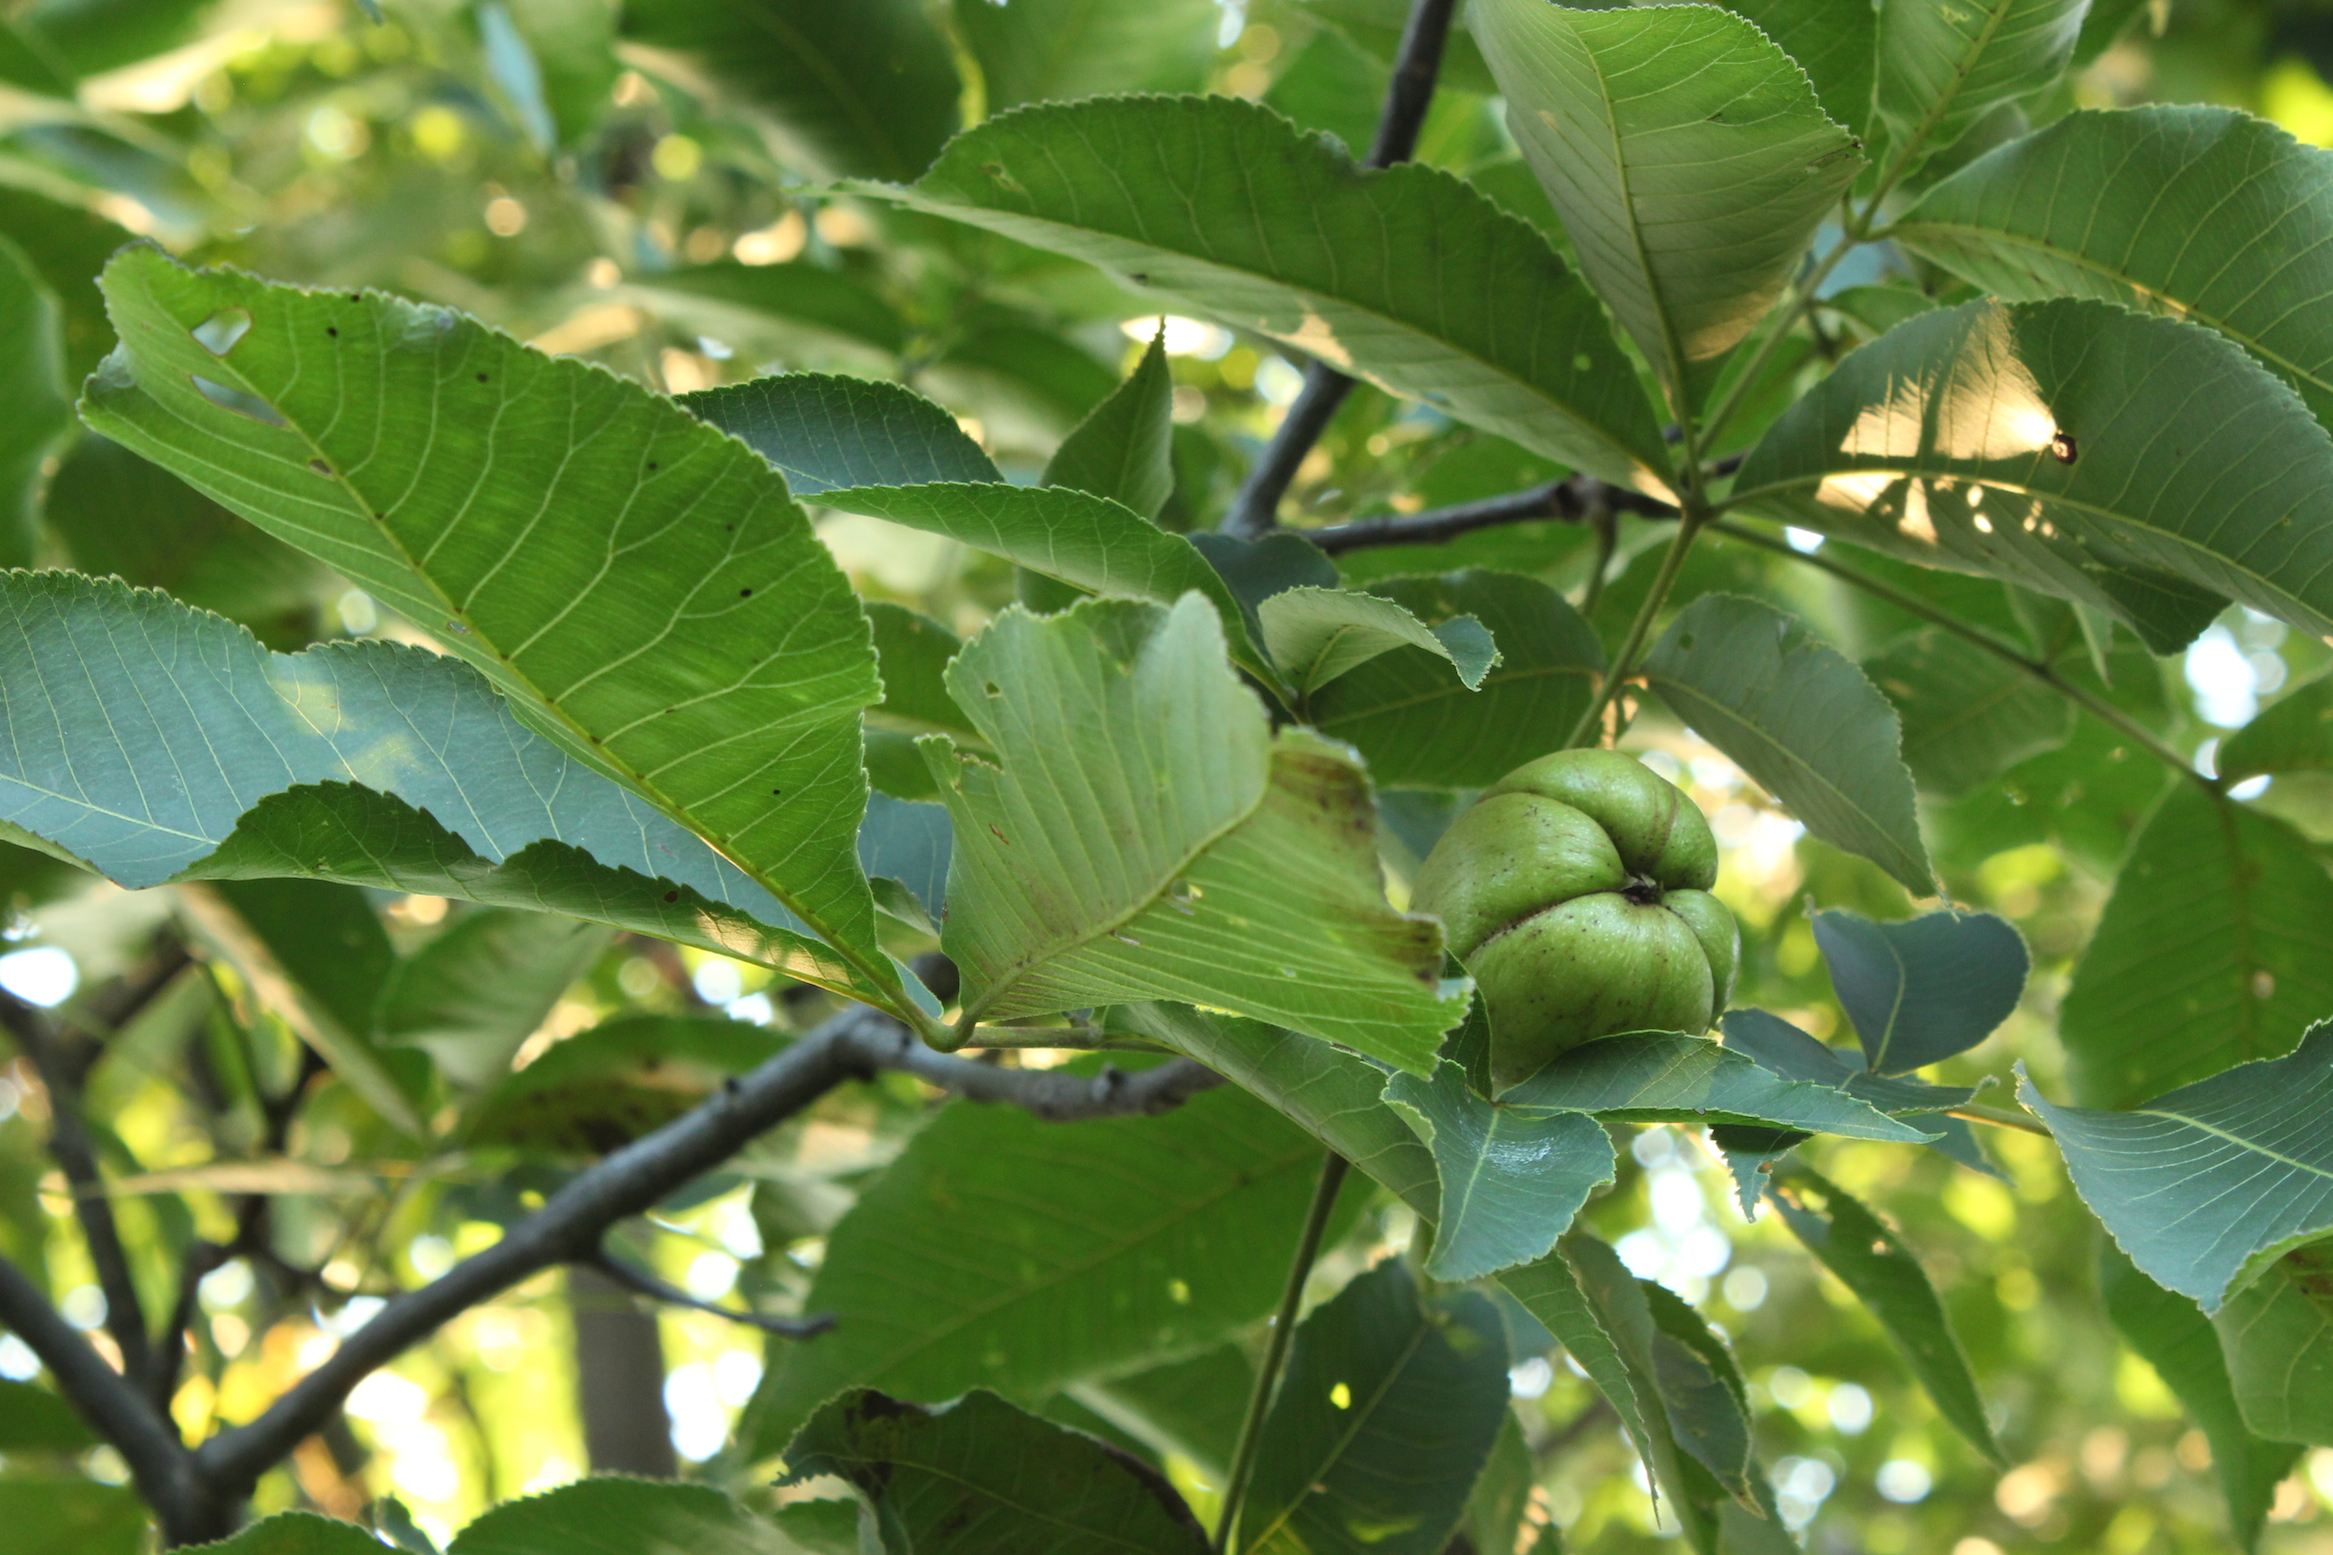 Shagbark hickory tree with nuts (Rebekah Carter 2014)